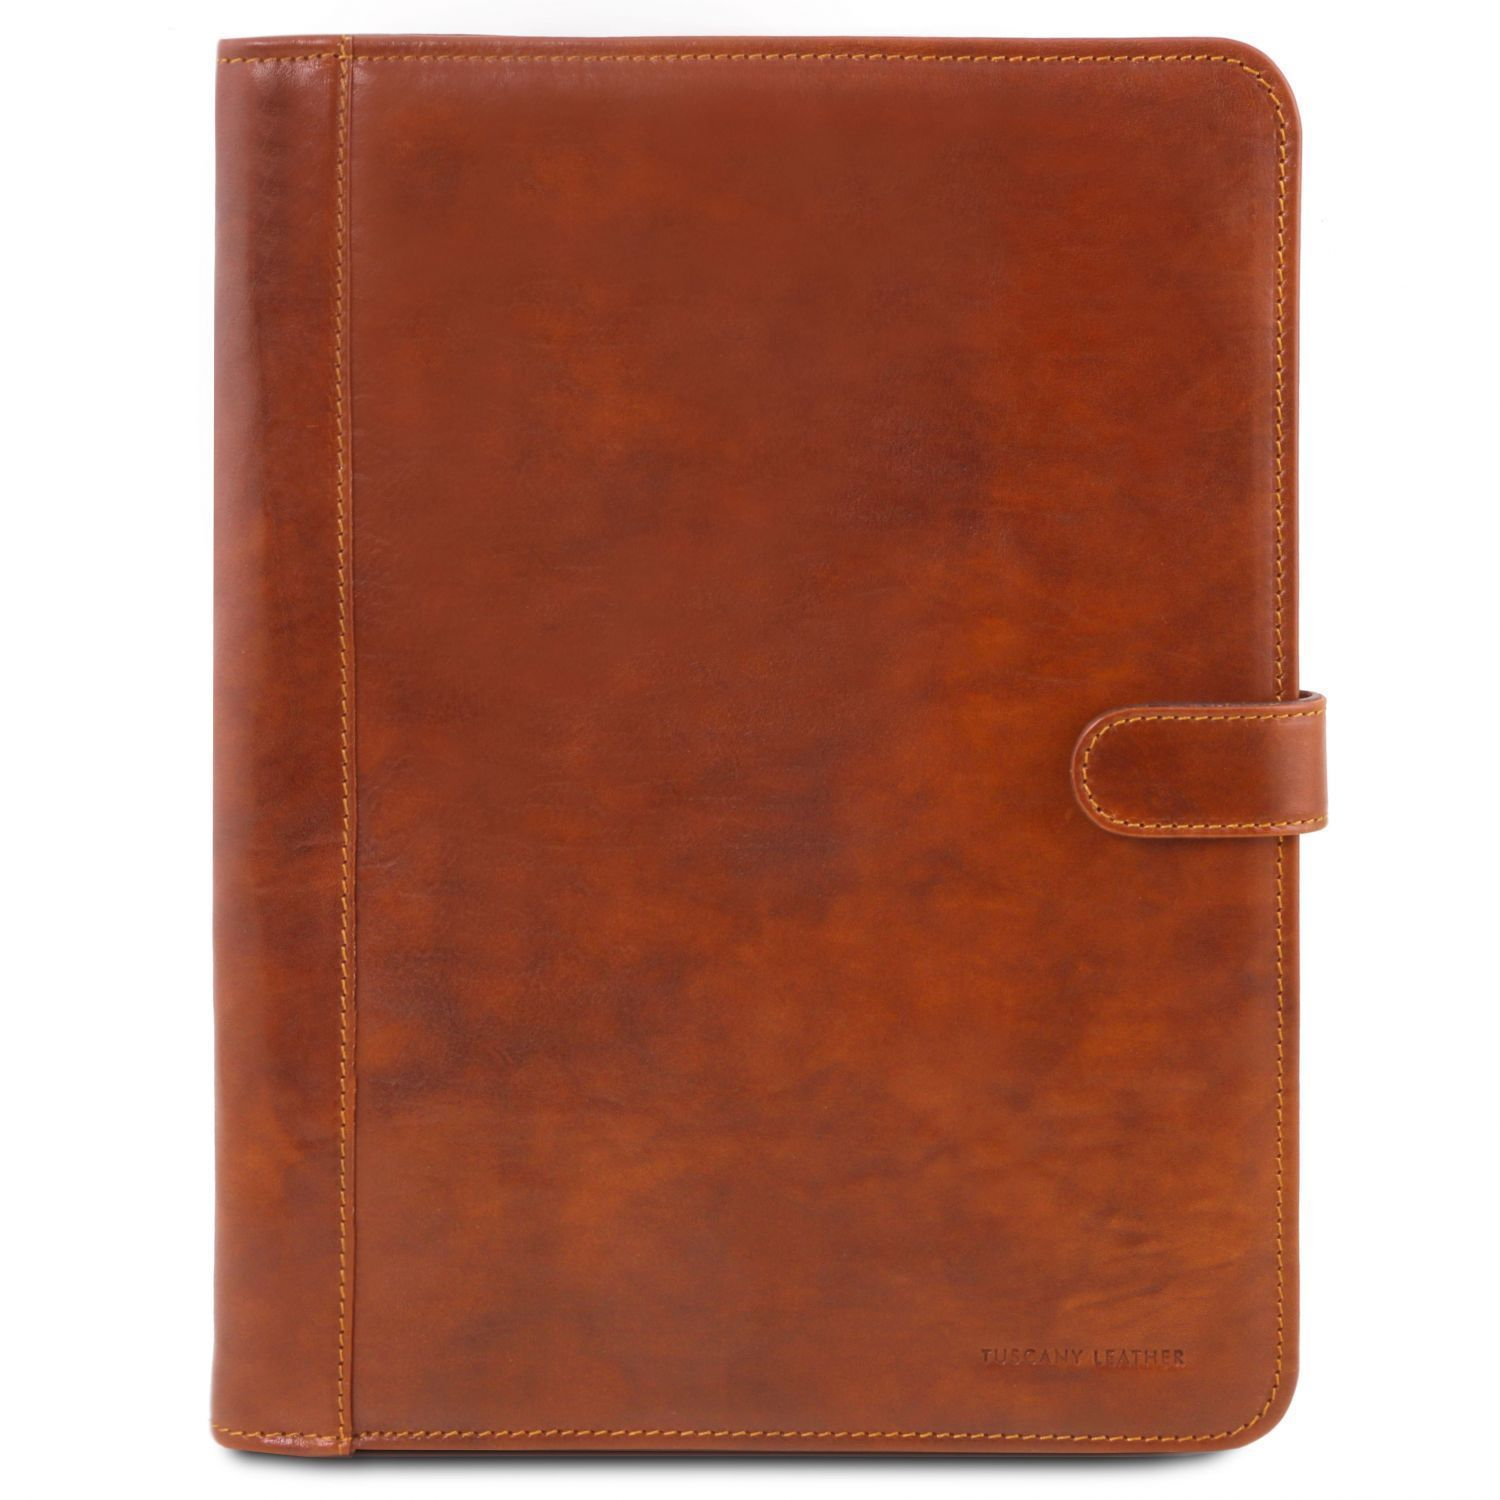 Tuscany Leather 1st Class 'Ottavio' Leather Document Case Leather Document/Portfolio Case Tuscany Leather Honey